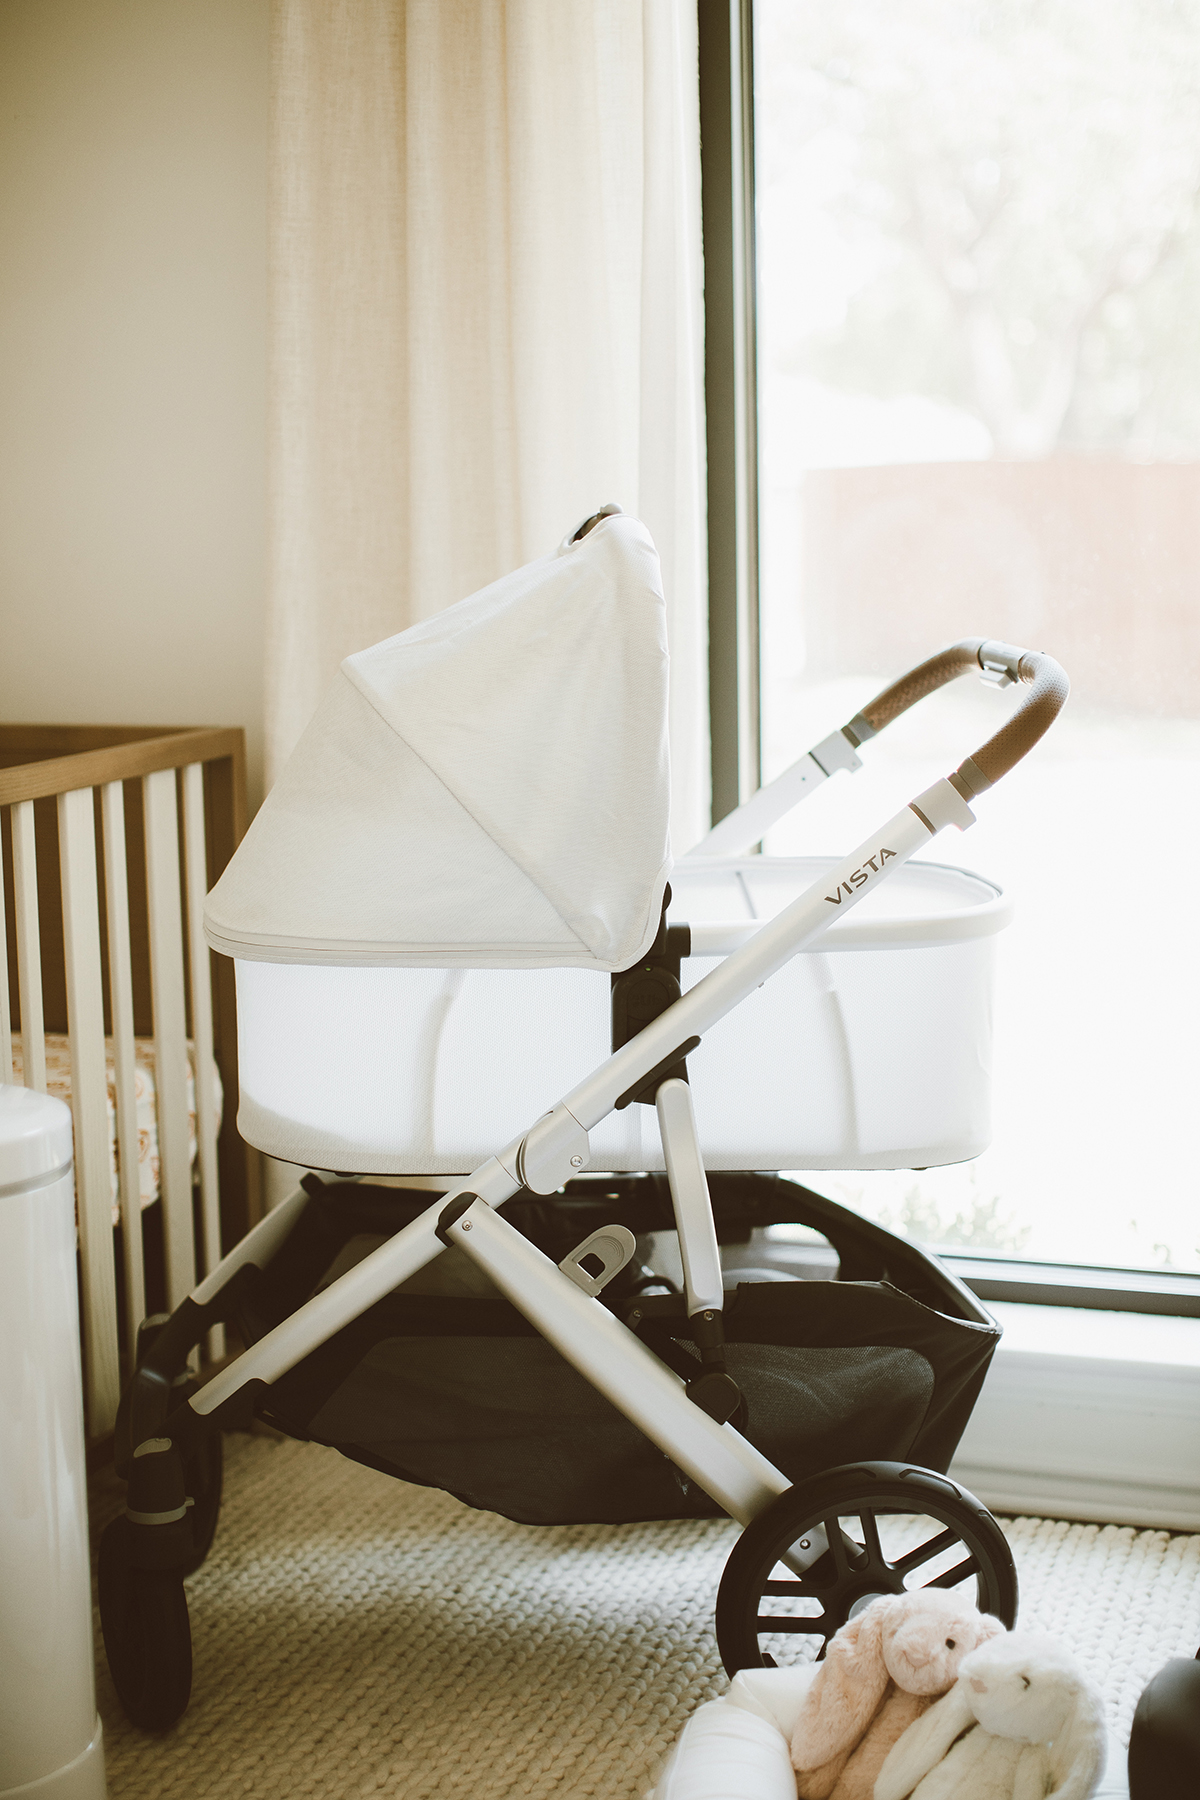 the best stroller to register for on your baby registry